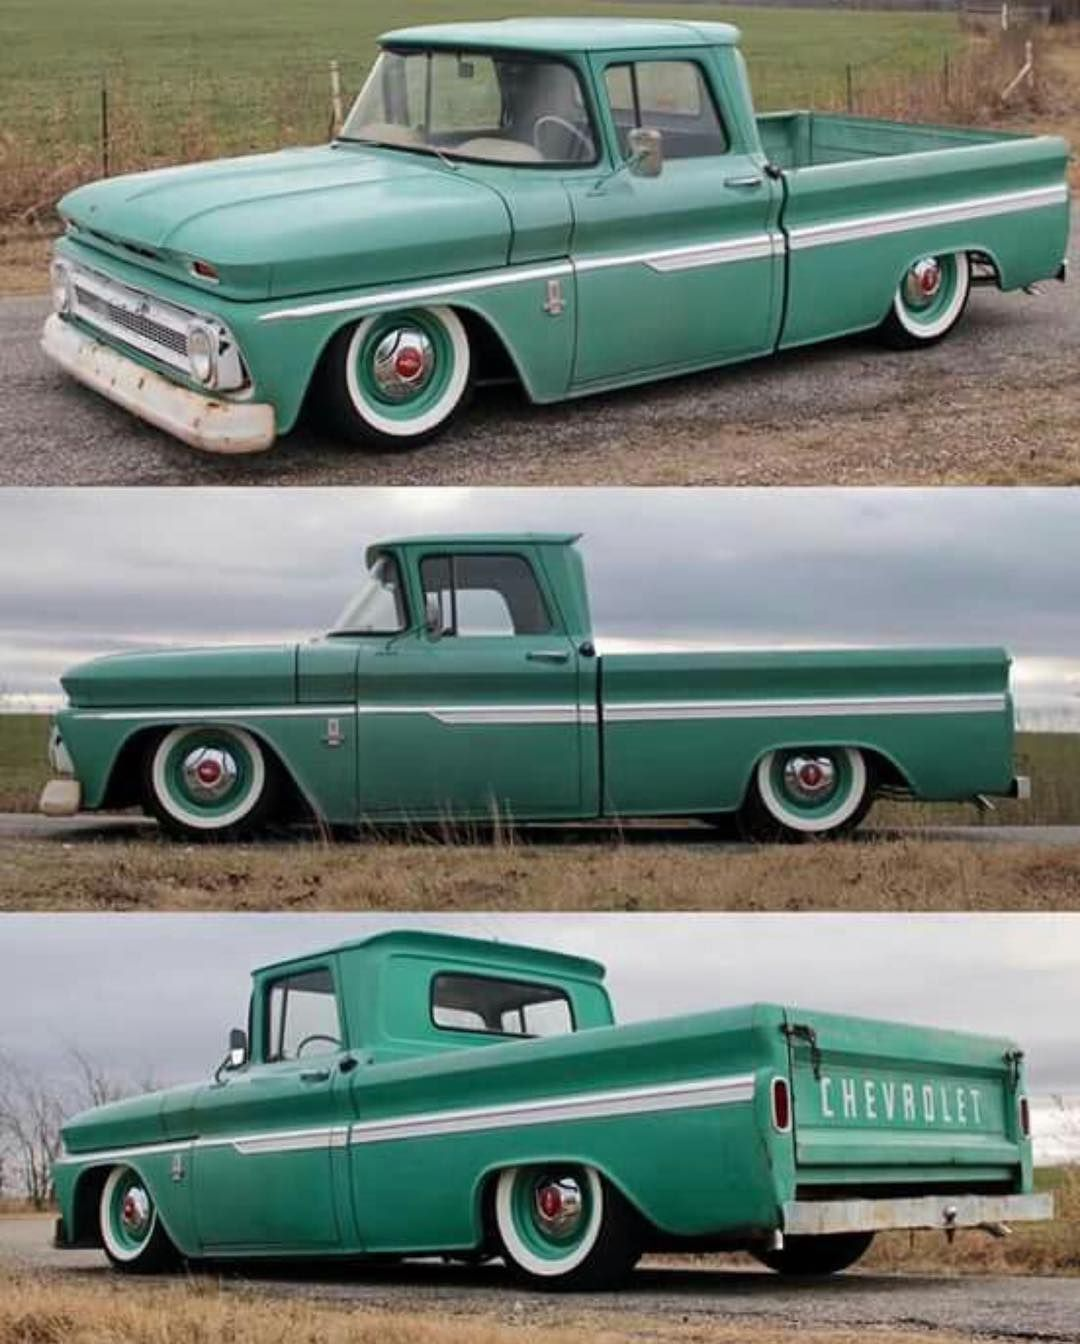 Subscribe To Our Youtube Channe Classic Pickup Trucks C10 Chevy